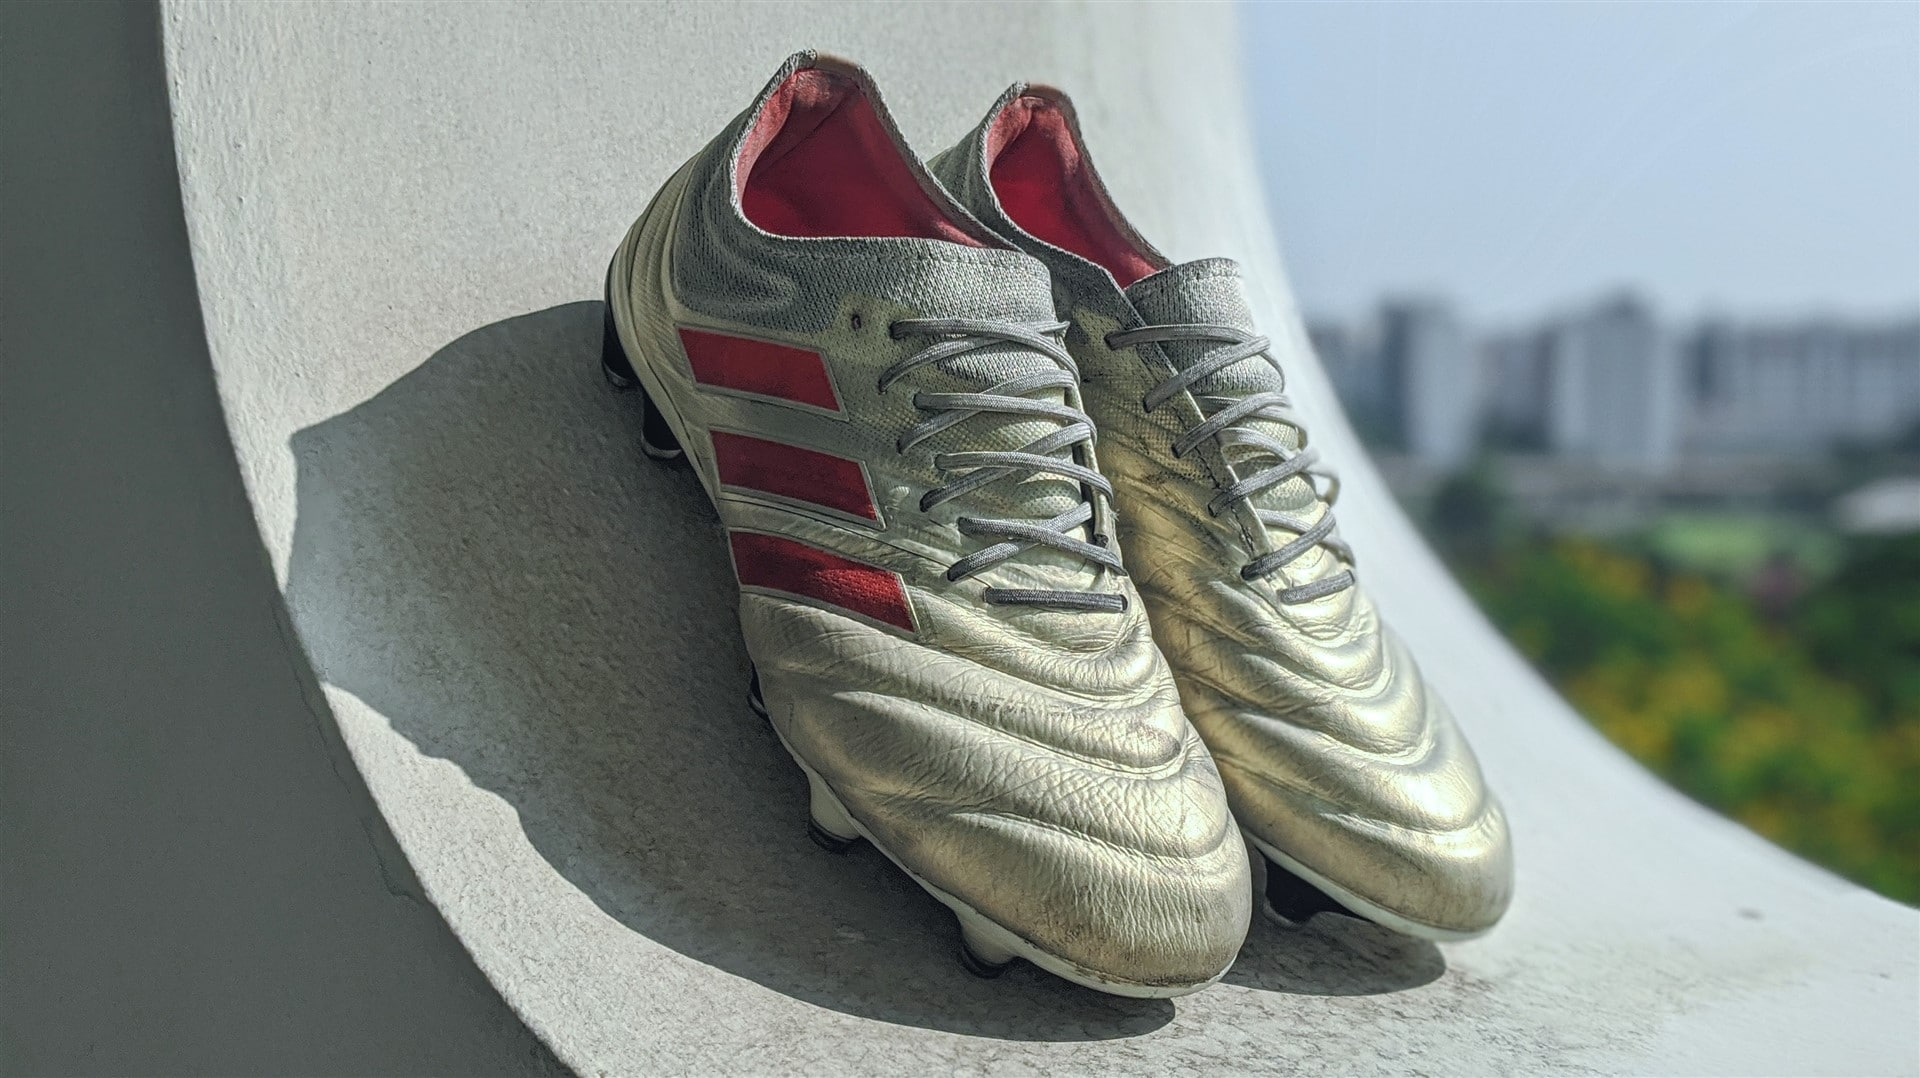 I wore the adidas Copa 19.1 for a year